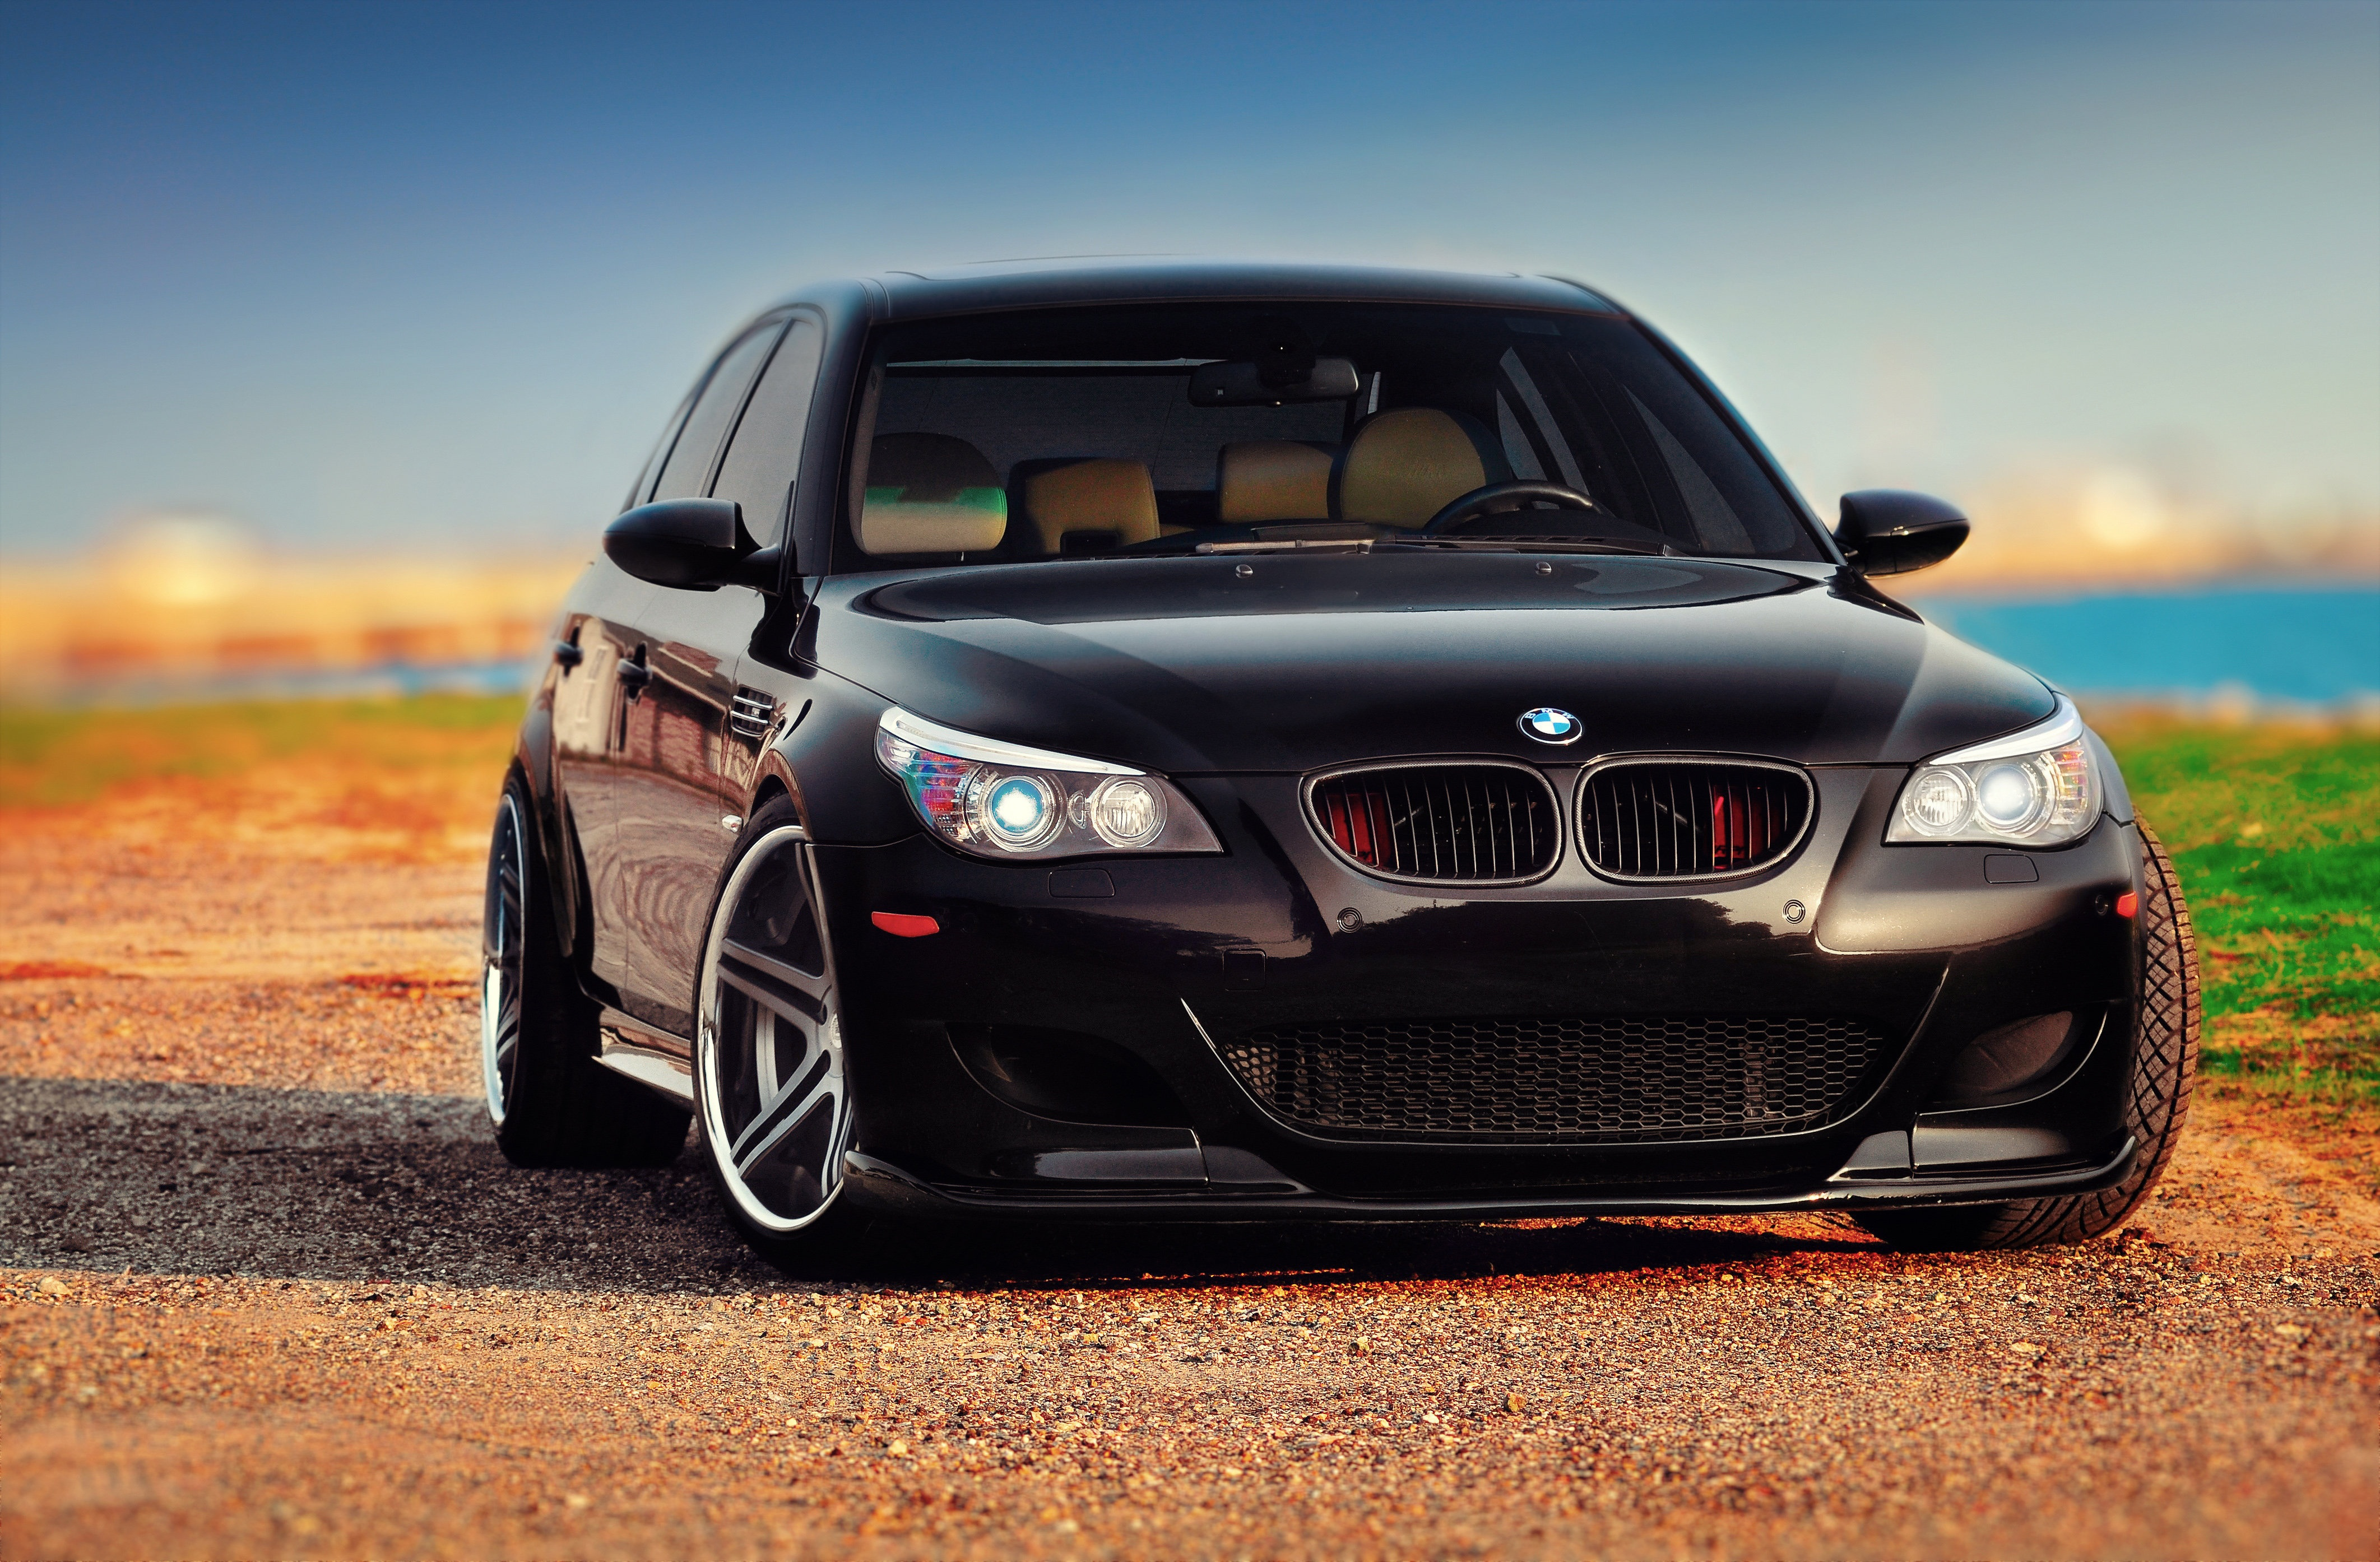 Bmw Car Wallpaper Inspirational Bmw Car Wallpaper 6836046 Of Elegant Bmw Car Wallpaper